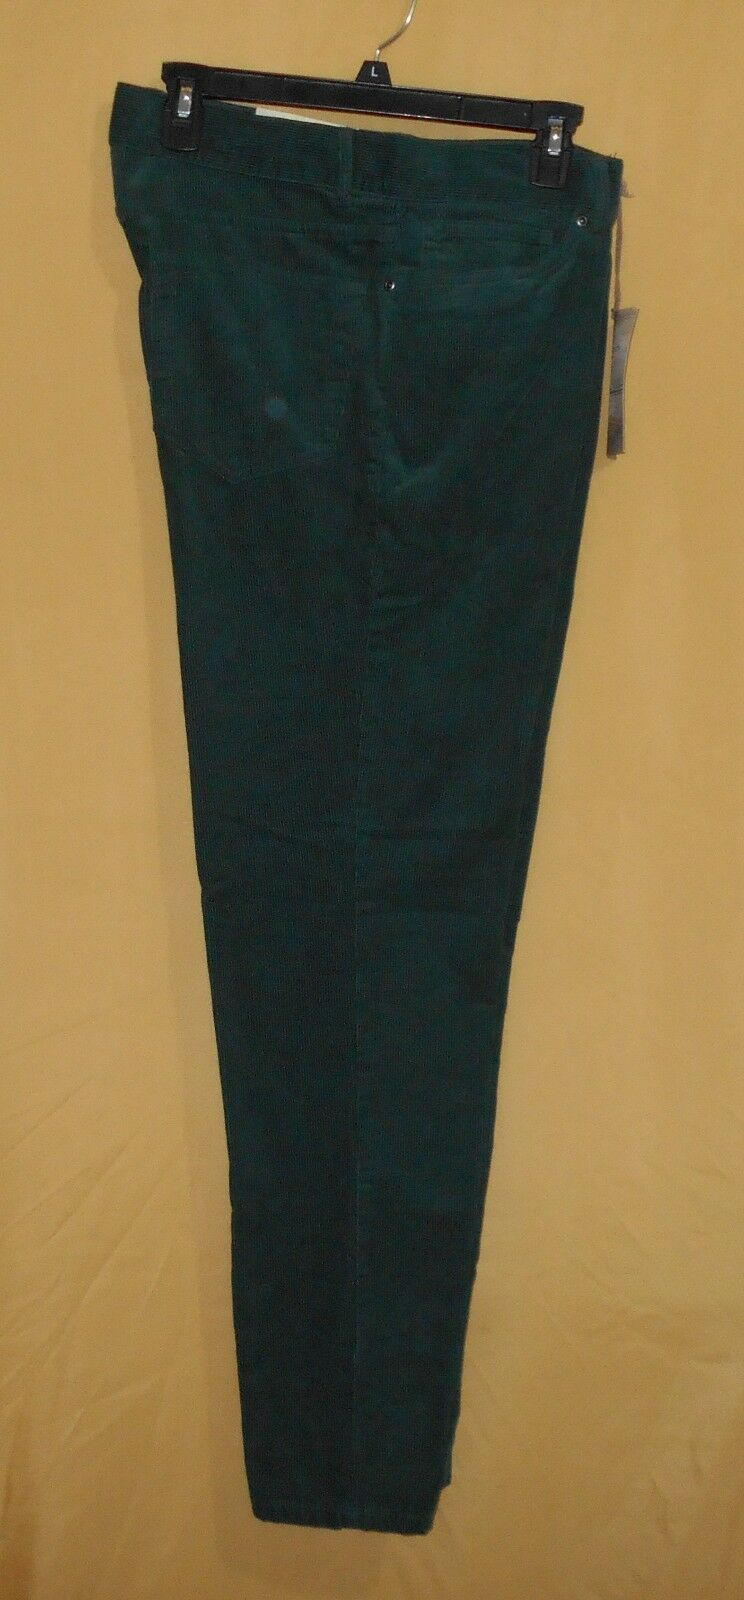 Clear Water men's pine green corduroy pants dress cord flat front straight